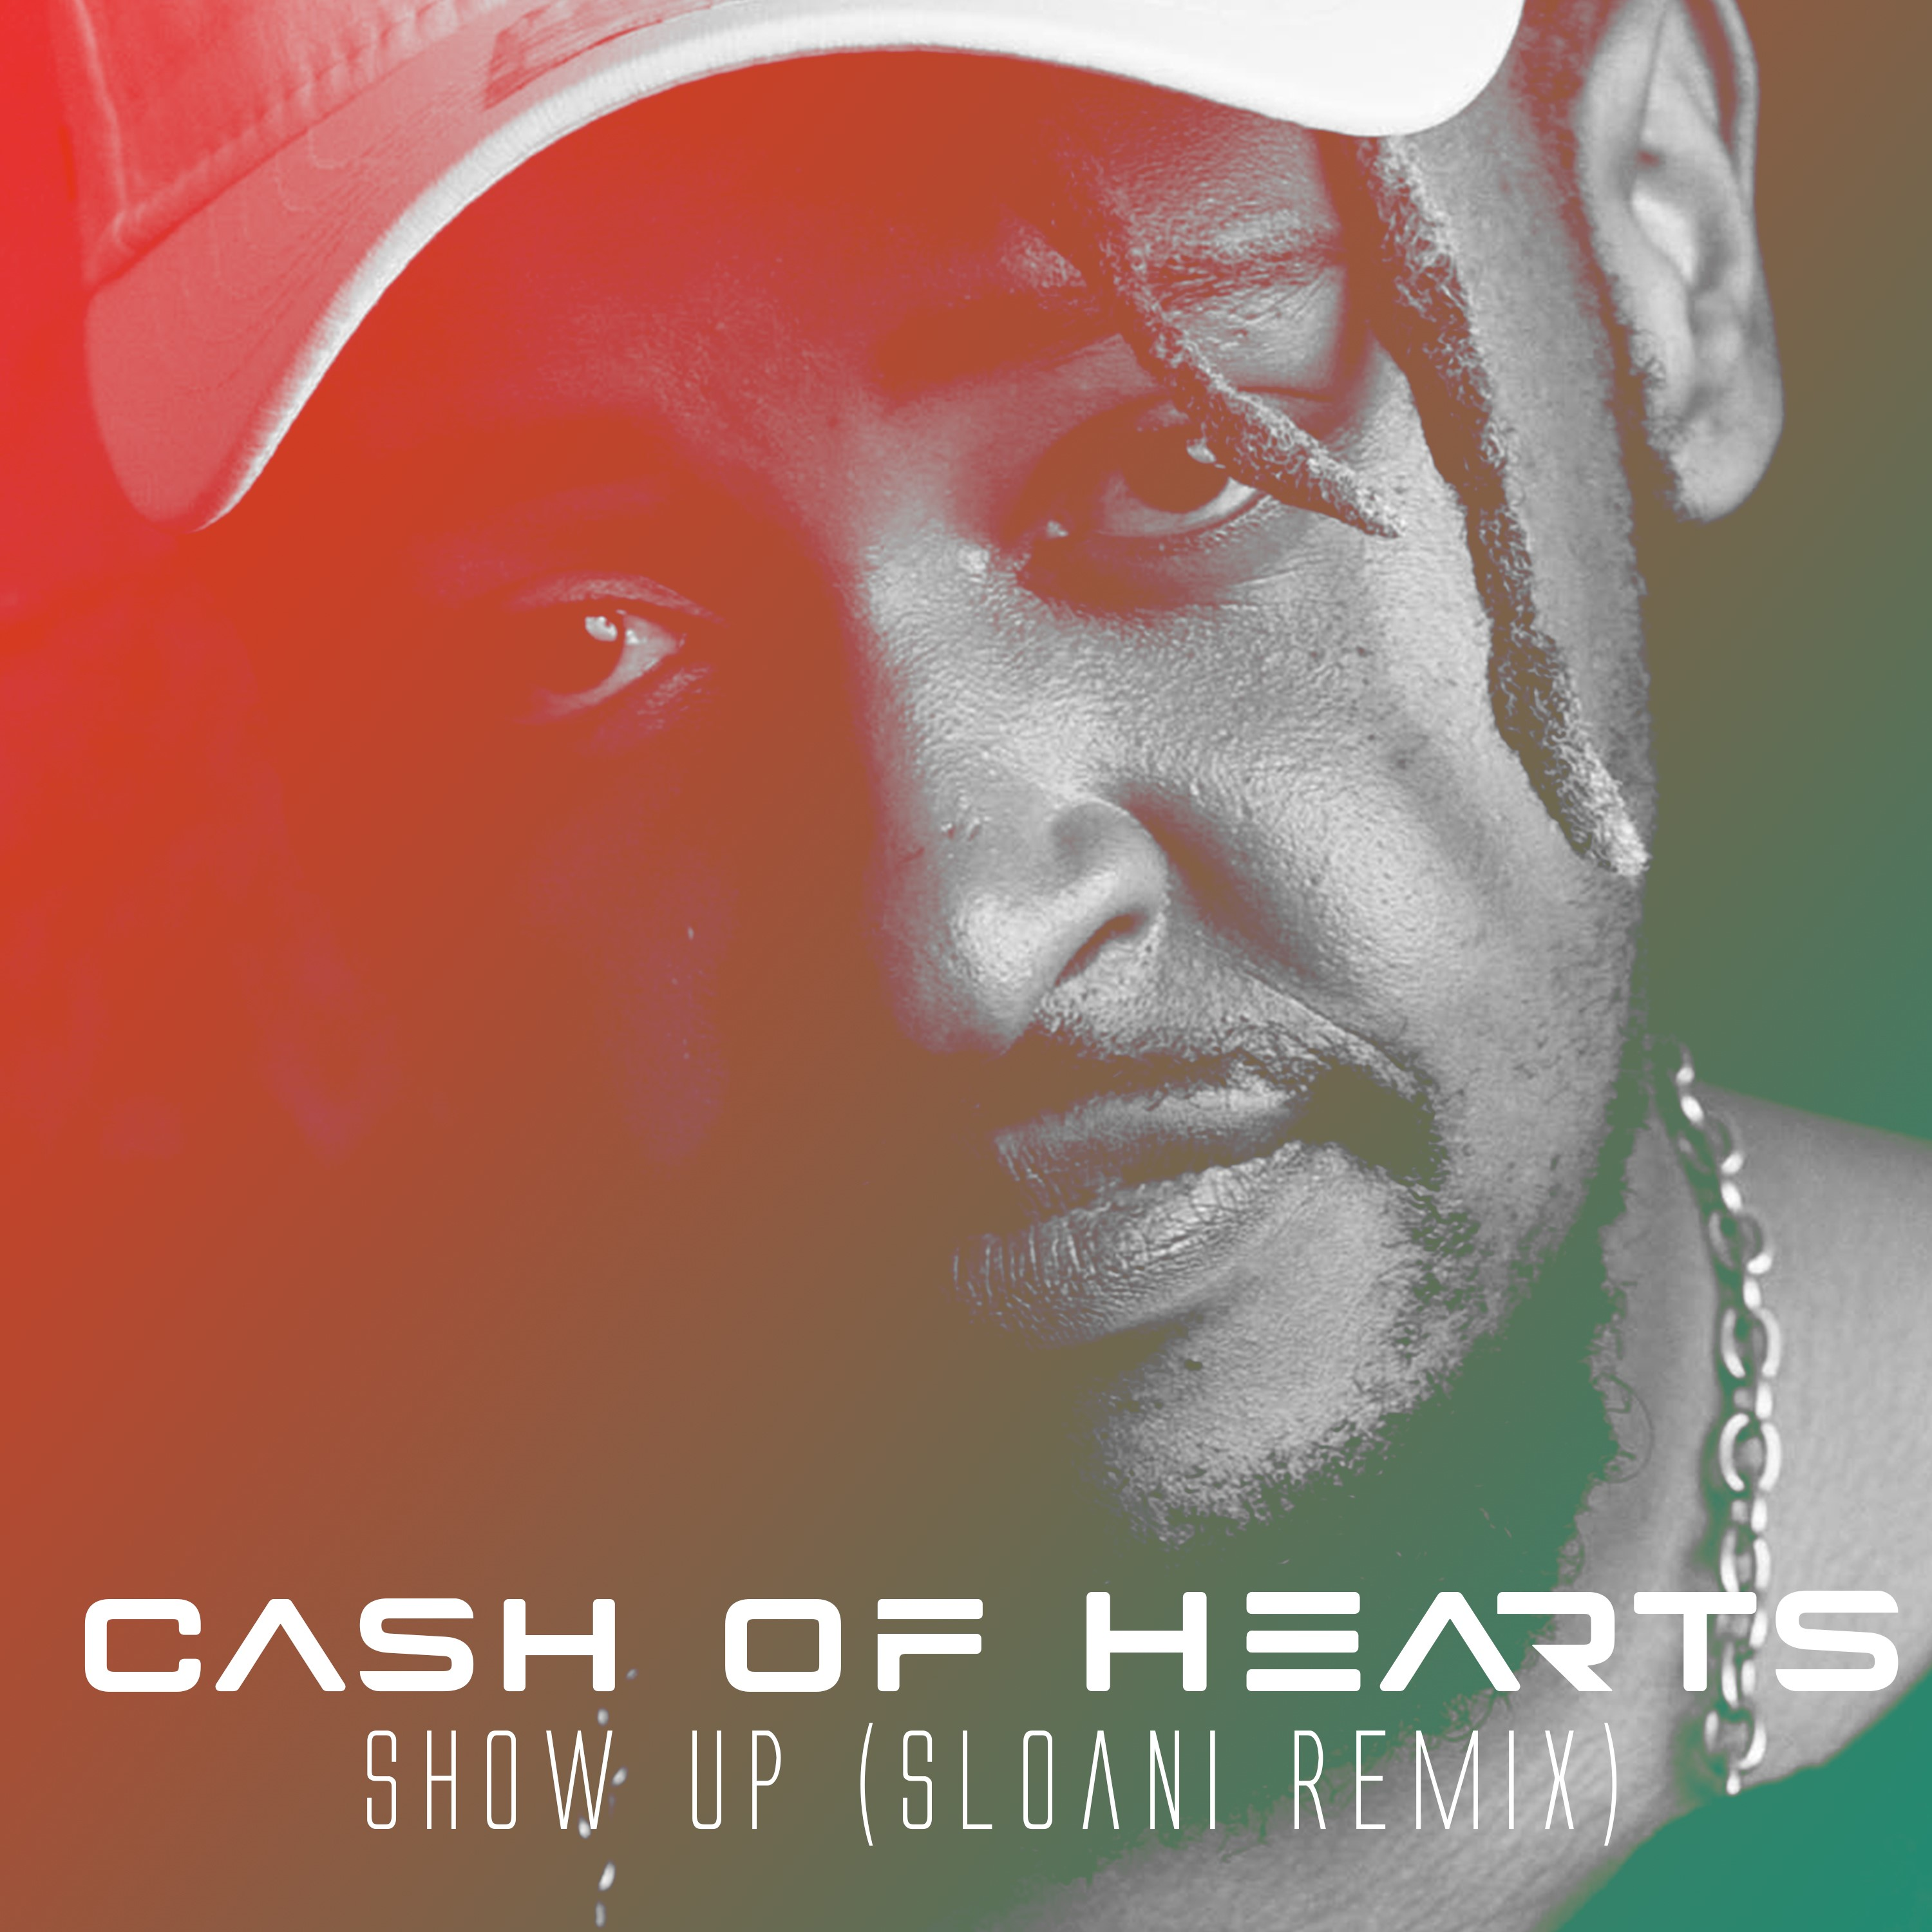 CASH OF HEARTS